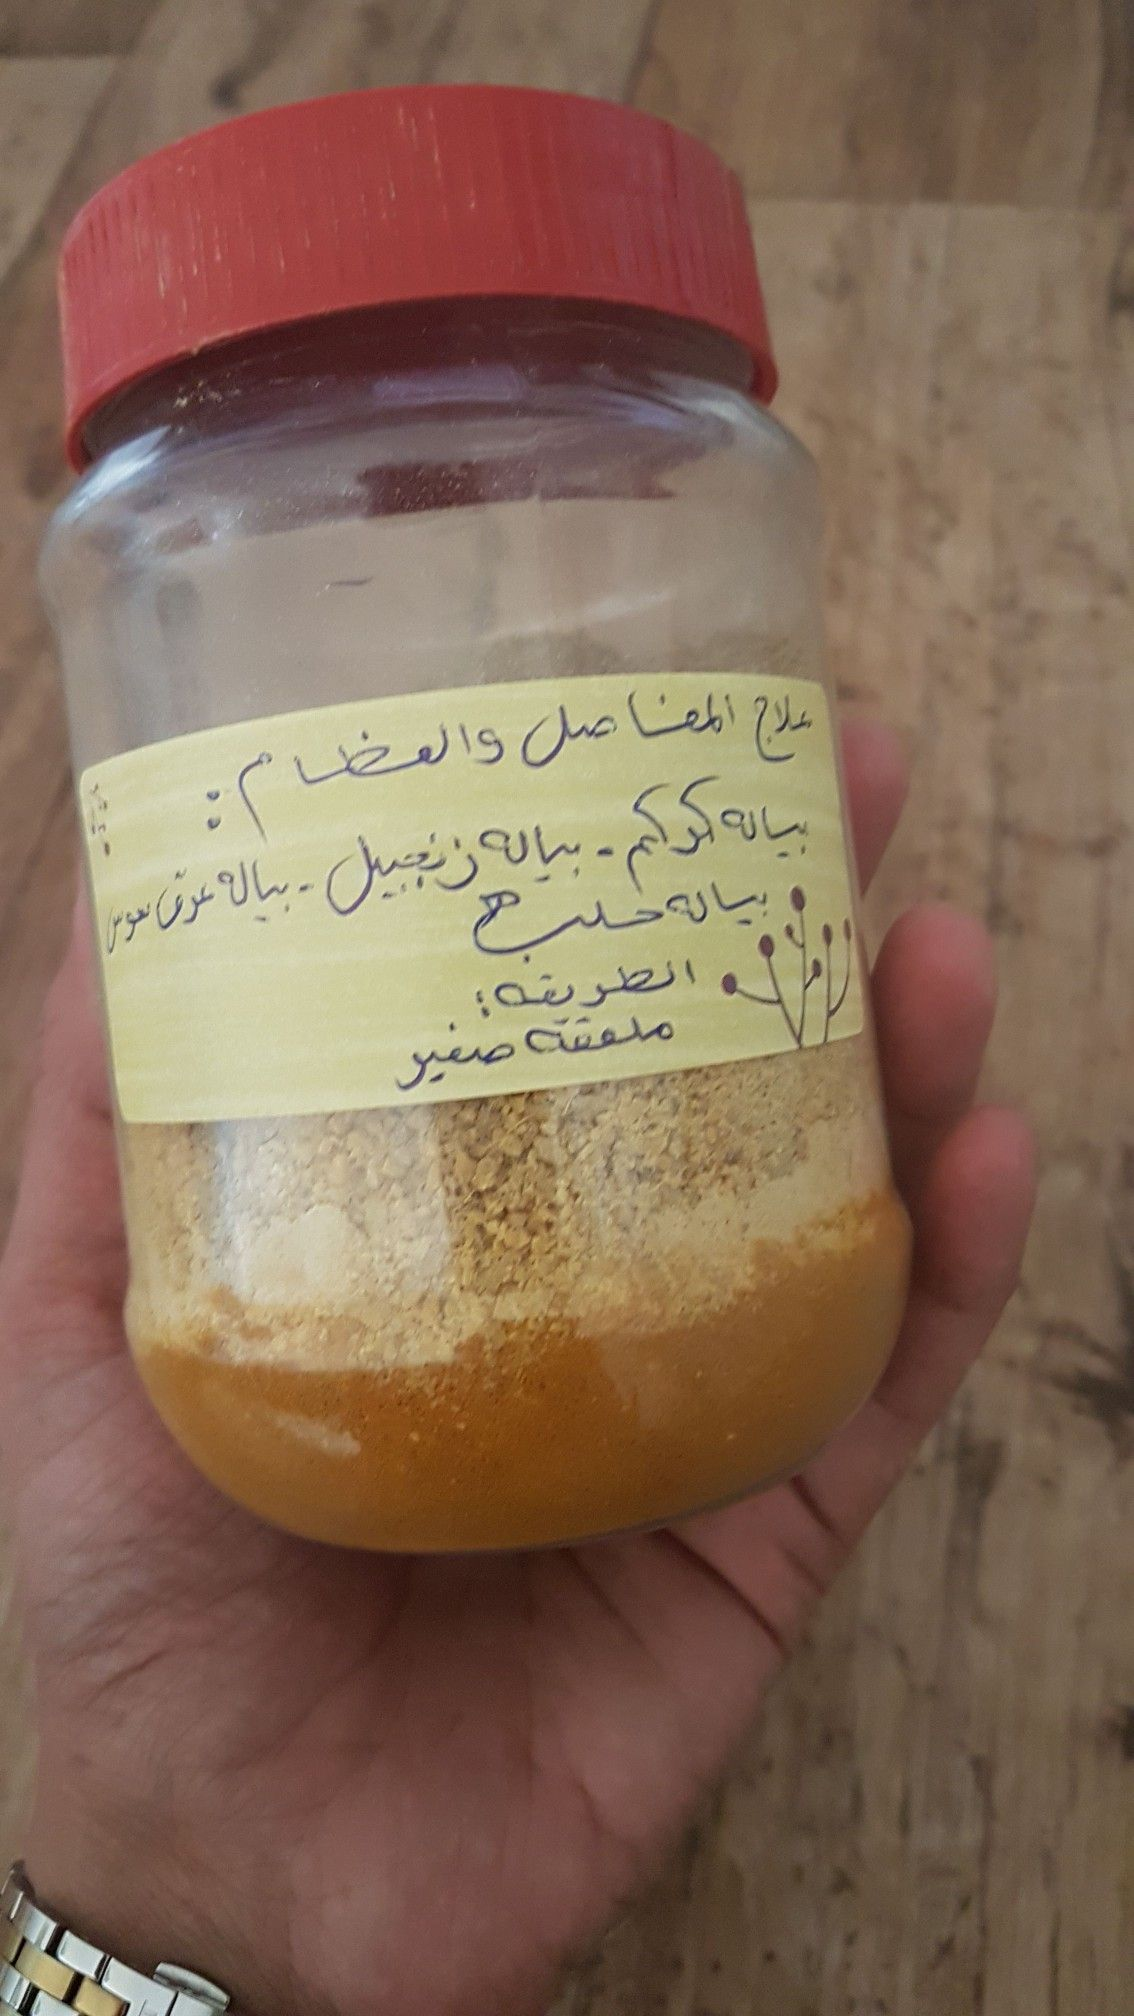 Pin By Mzoon27 On منتجات مجربه In 2021 Natural Skin Care Diy Diy Skin Care Natural Skin Care